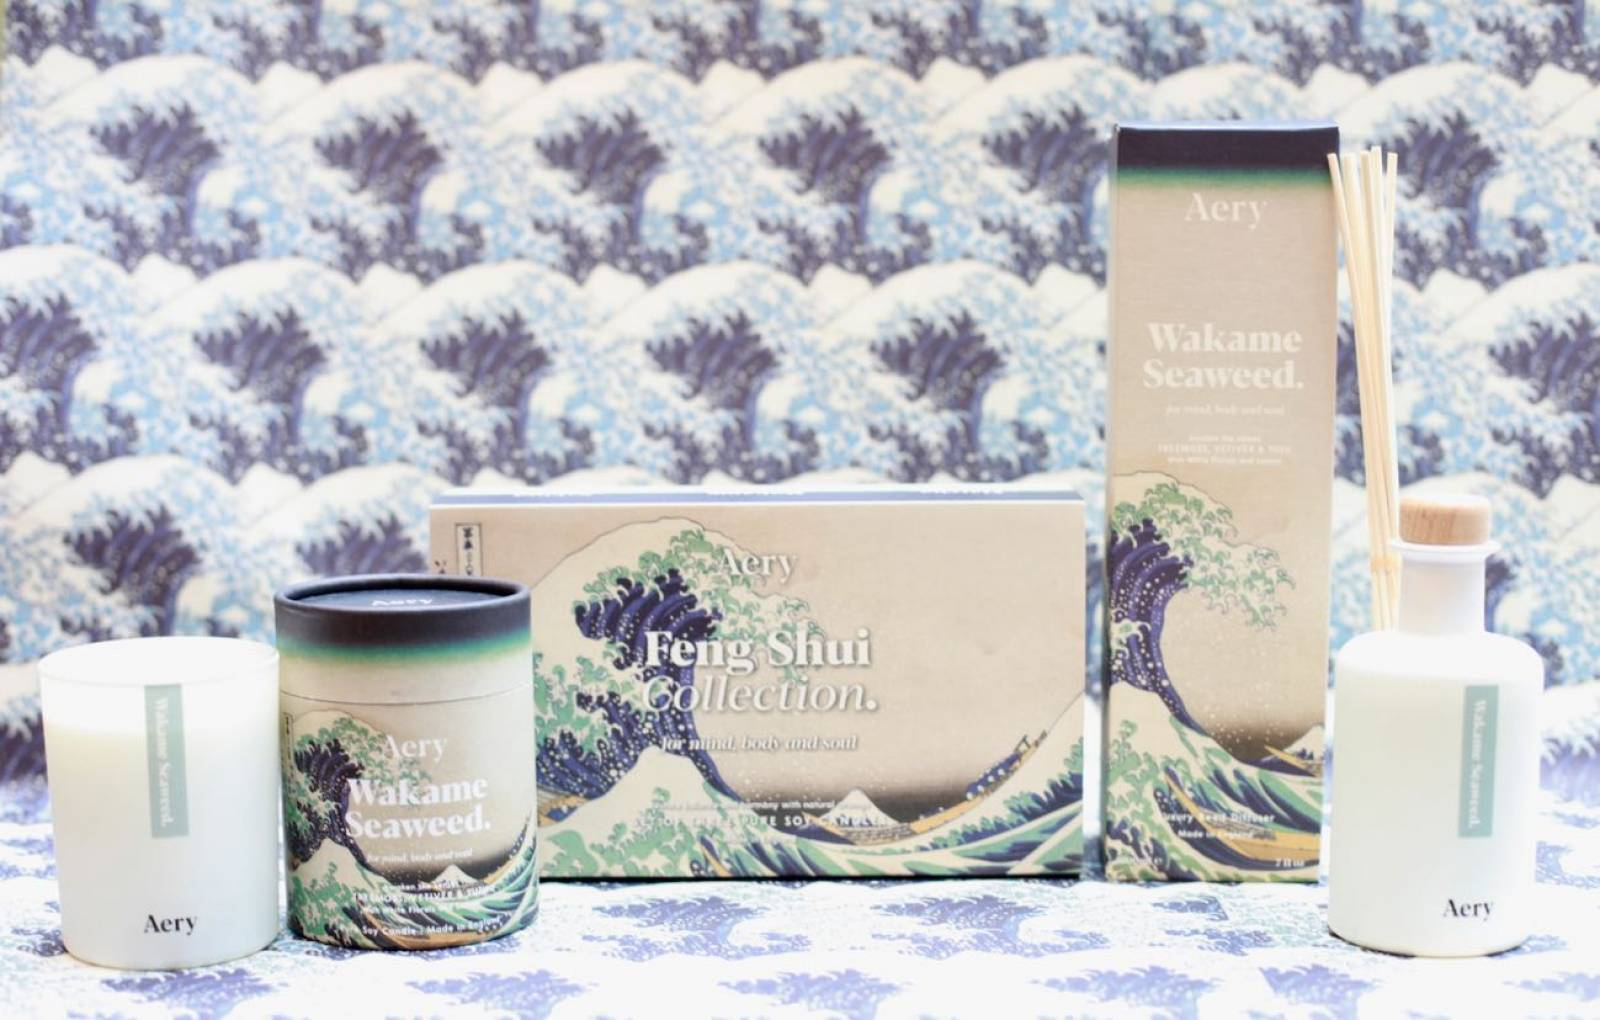 Wakame Seaweed Boxed Candle By Aery thumbnails